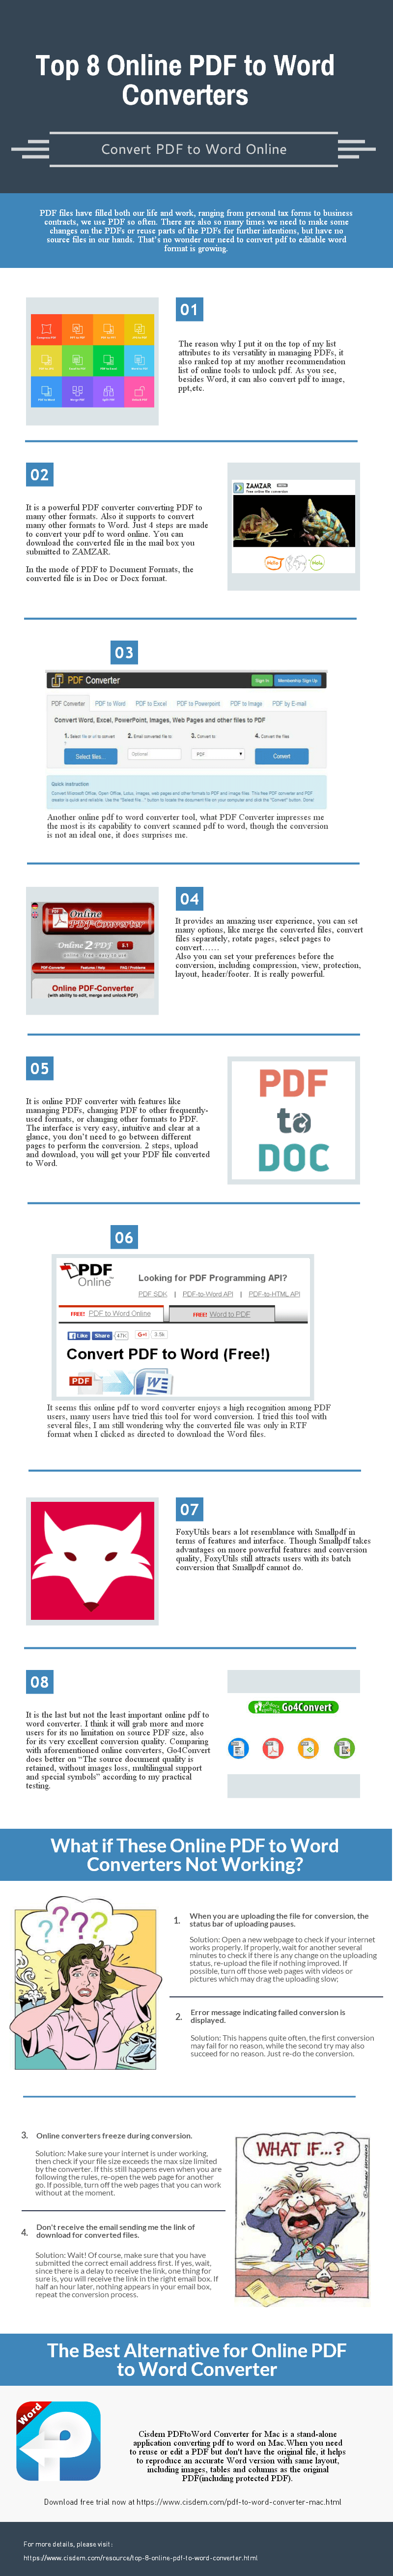 Top 8 Online Pdf to Word Converters